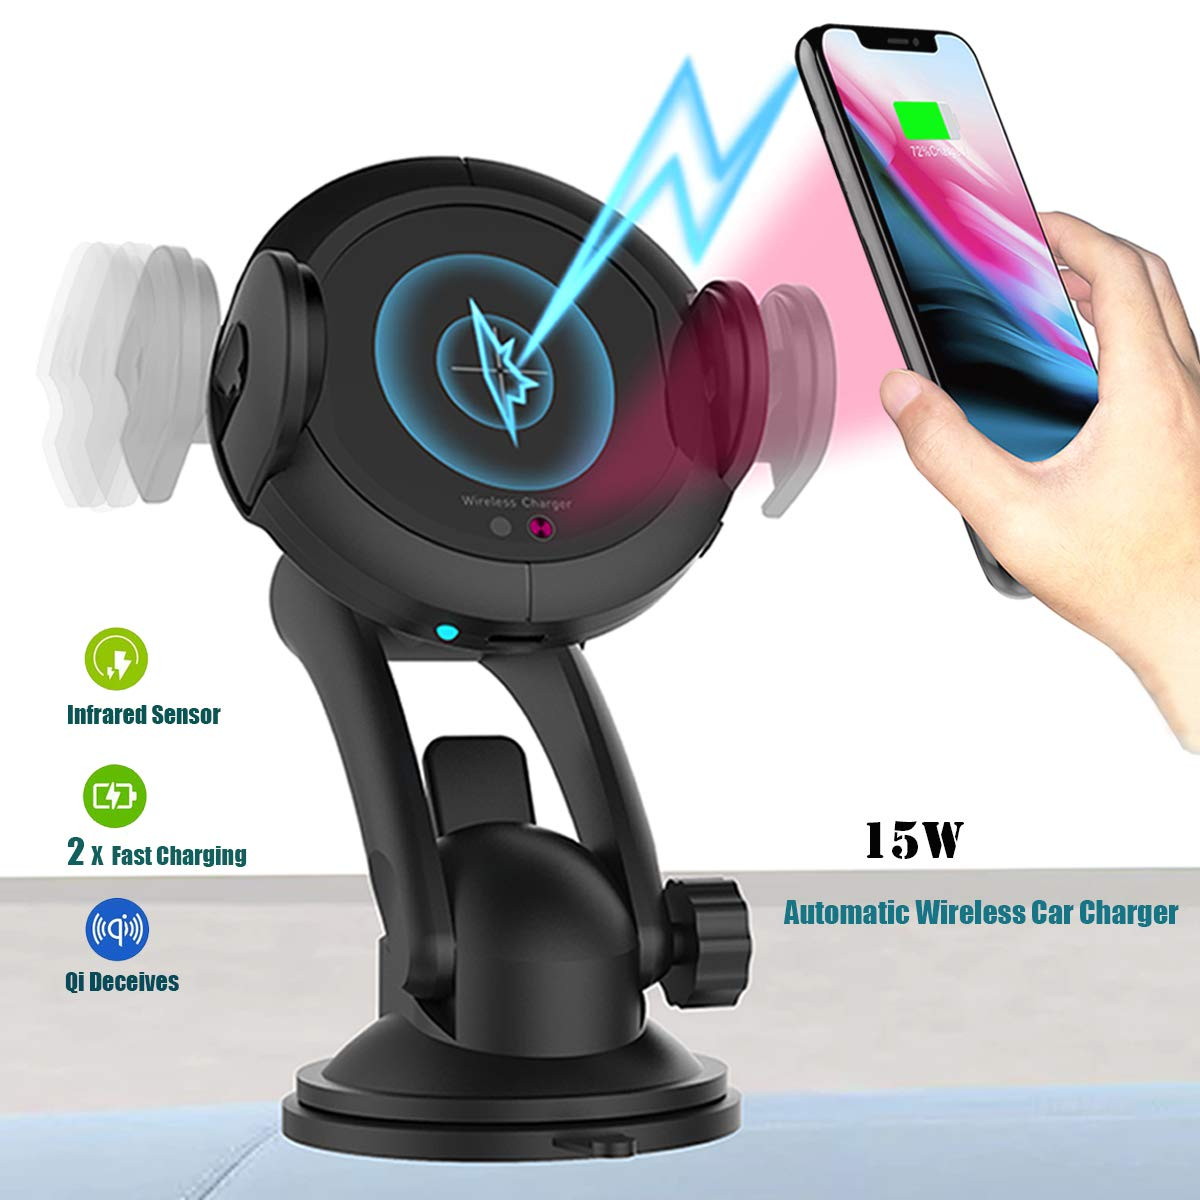 Wireless car Charger Mount-Qi Fast Charging air Vent or Windshield Phone Holder, Compatible with iPhone X/8/8 Plus Samsung Galaxy Note 9/8/S9/S8/S7/S6 Edge, Infrared Motion (Black)